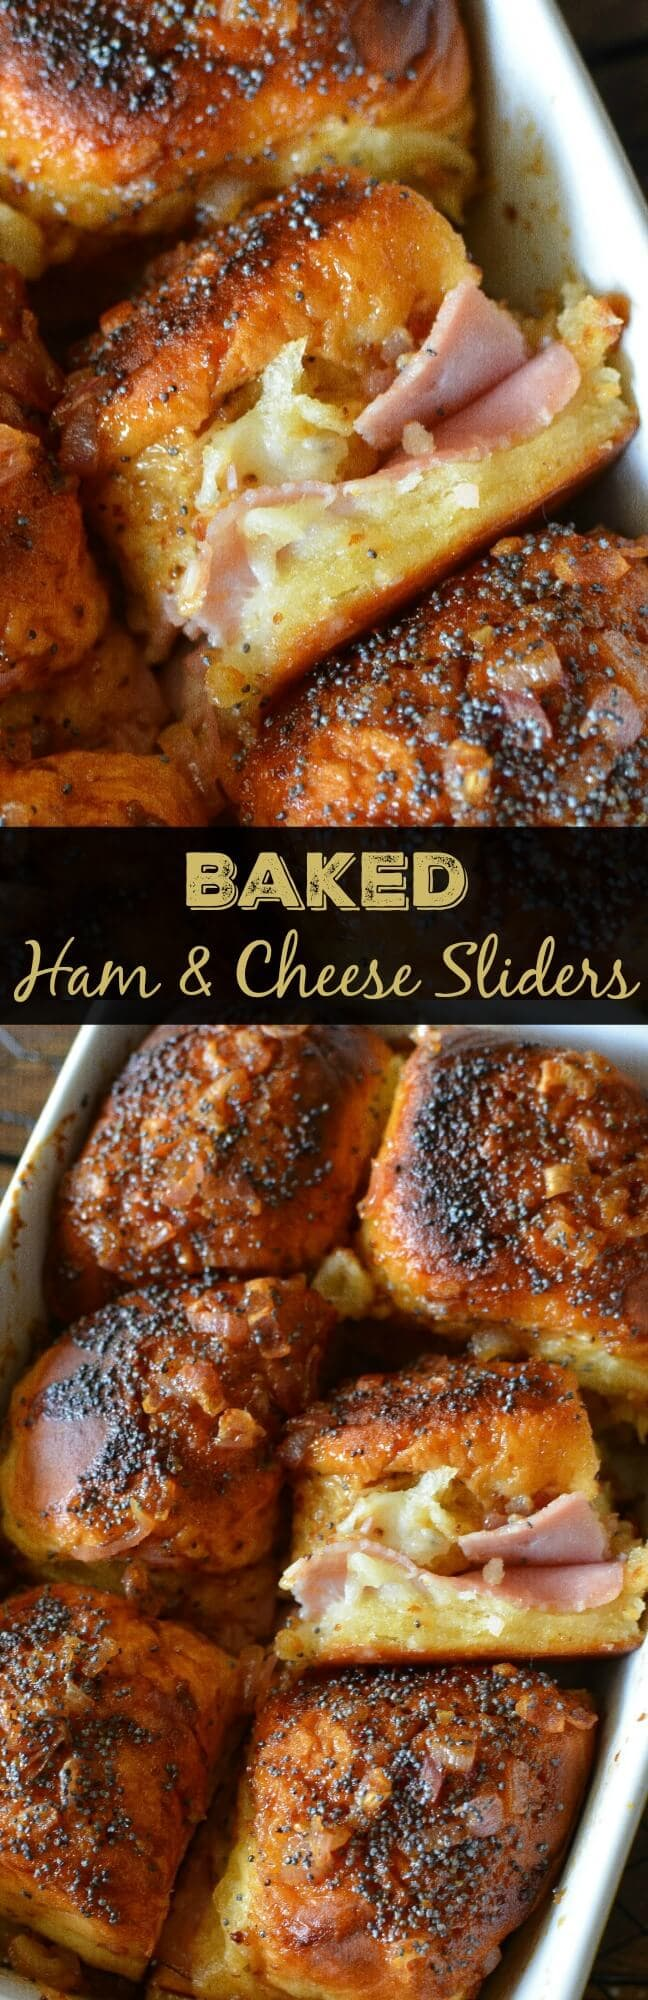 Baked Mustard, Ham & Cheese Sliders  - These soft melted ham sliders are drenched in sauce and served warm out of the oven. It's no wonder they are one of my most popular recipes!